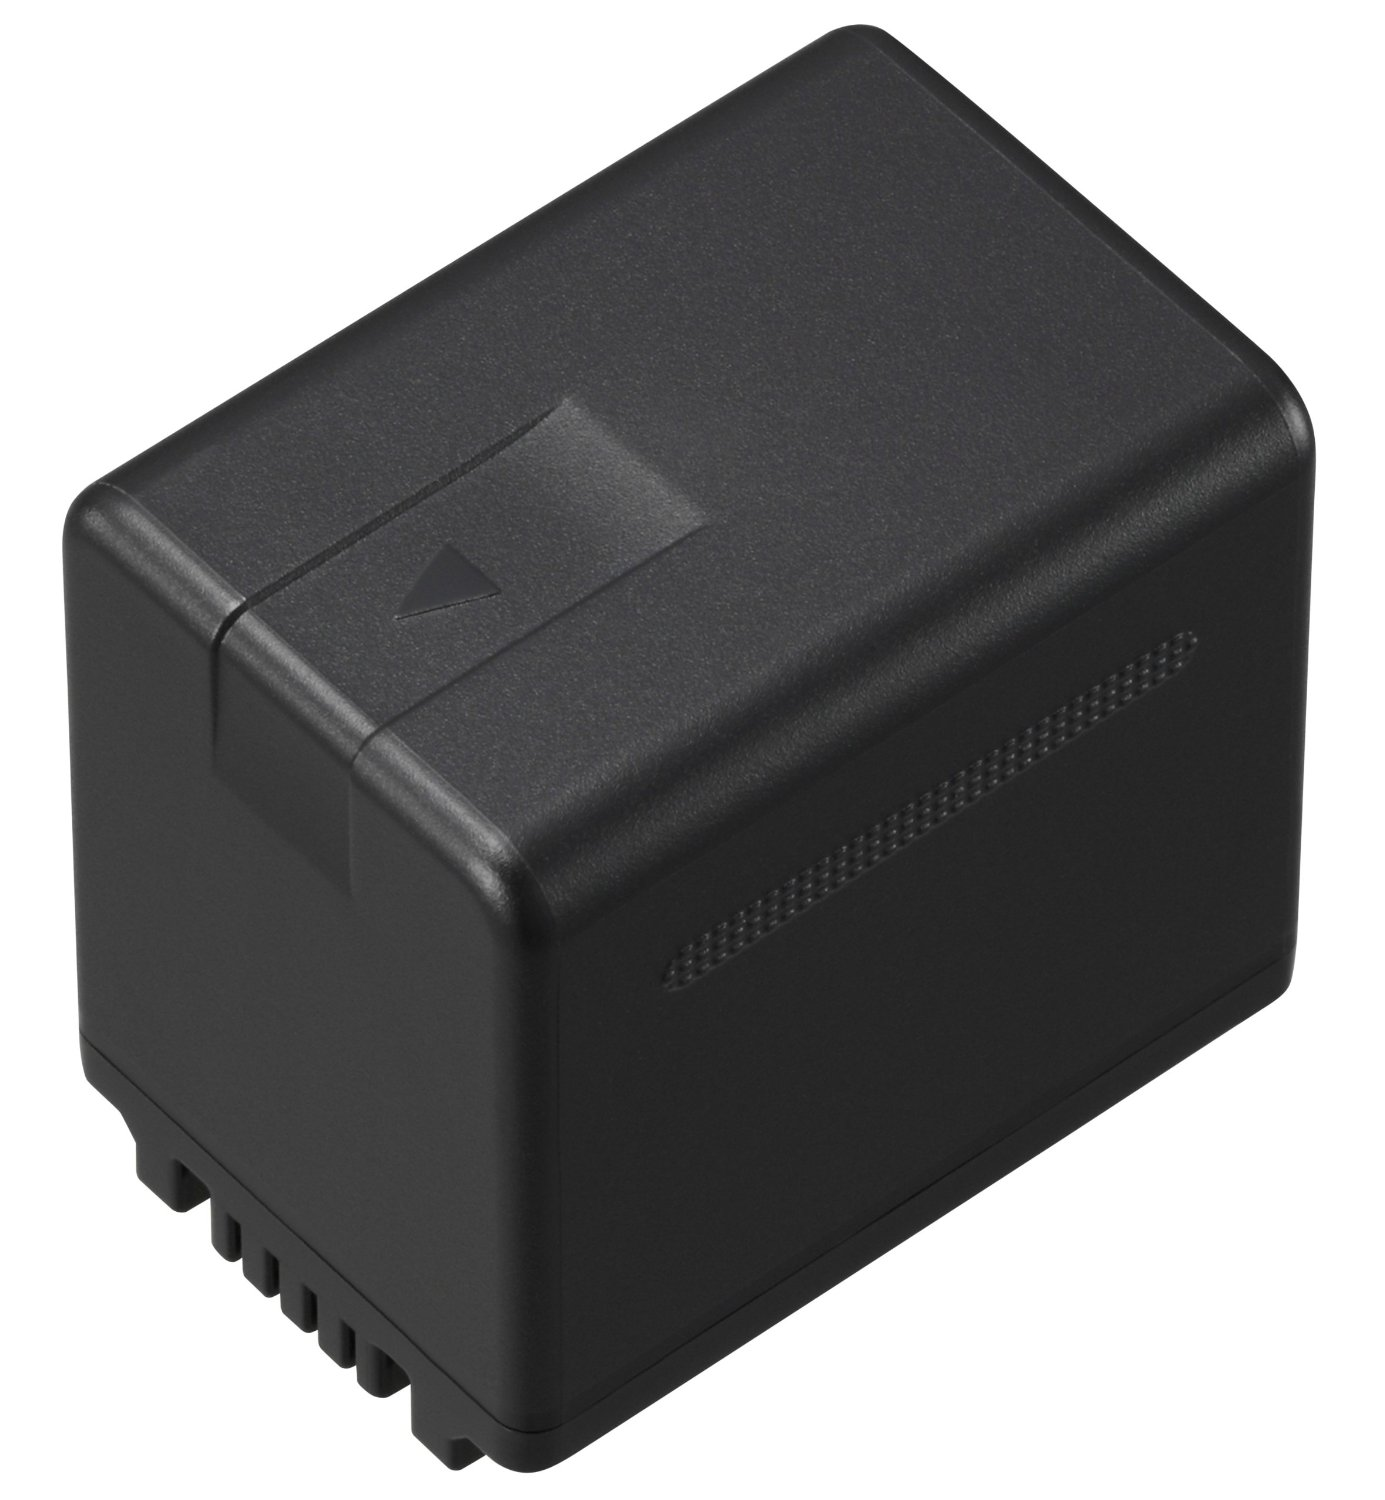 Panasonic VW-VBK360 Li-Ion Battery Pack